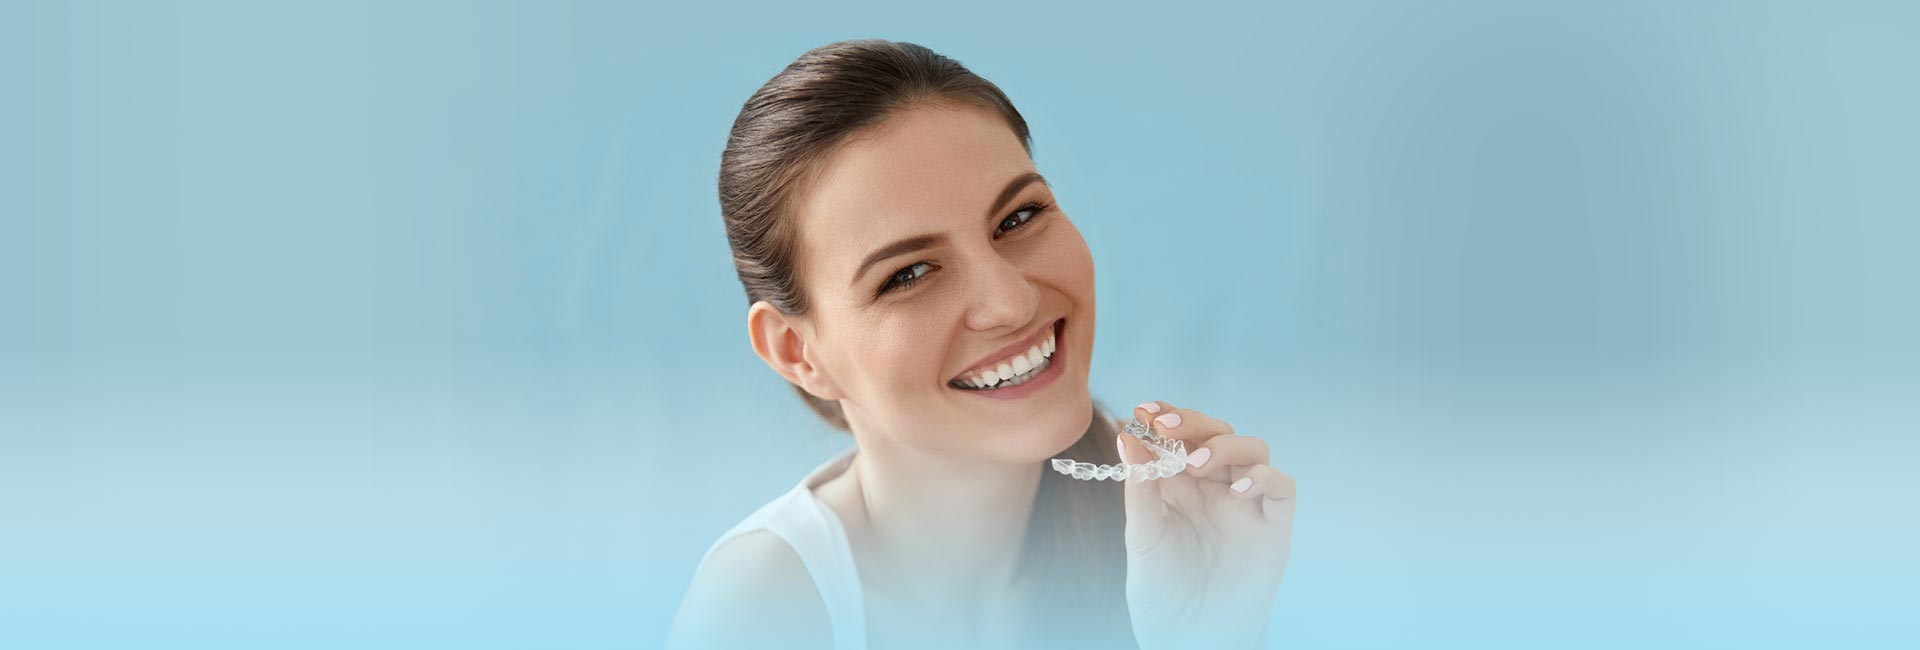 Woman smiling with dental Invisalign